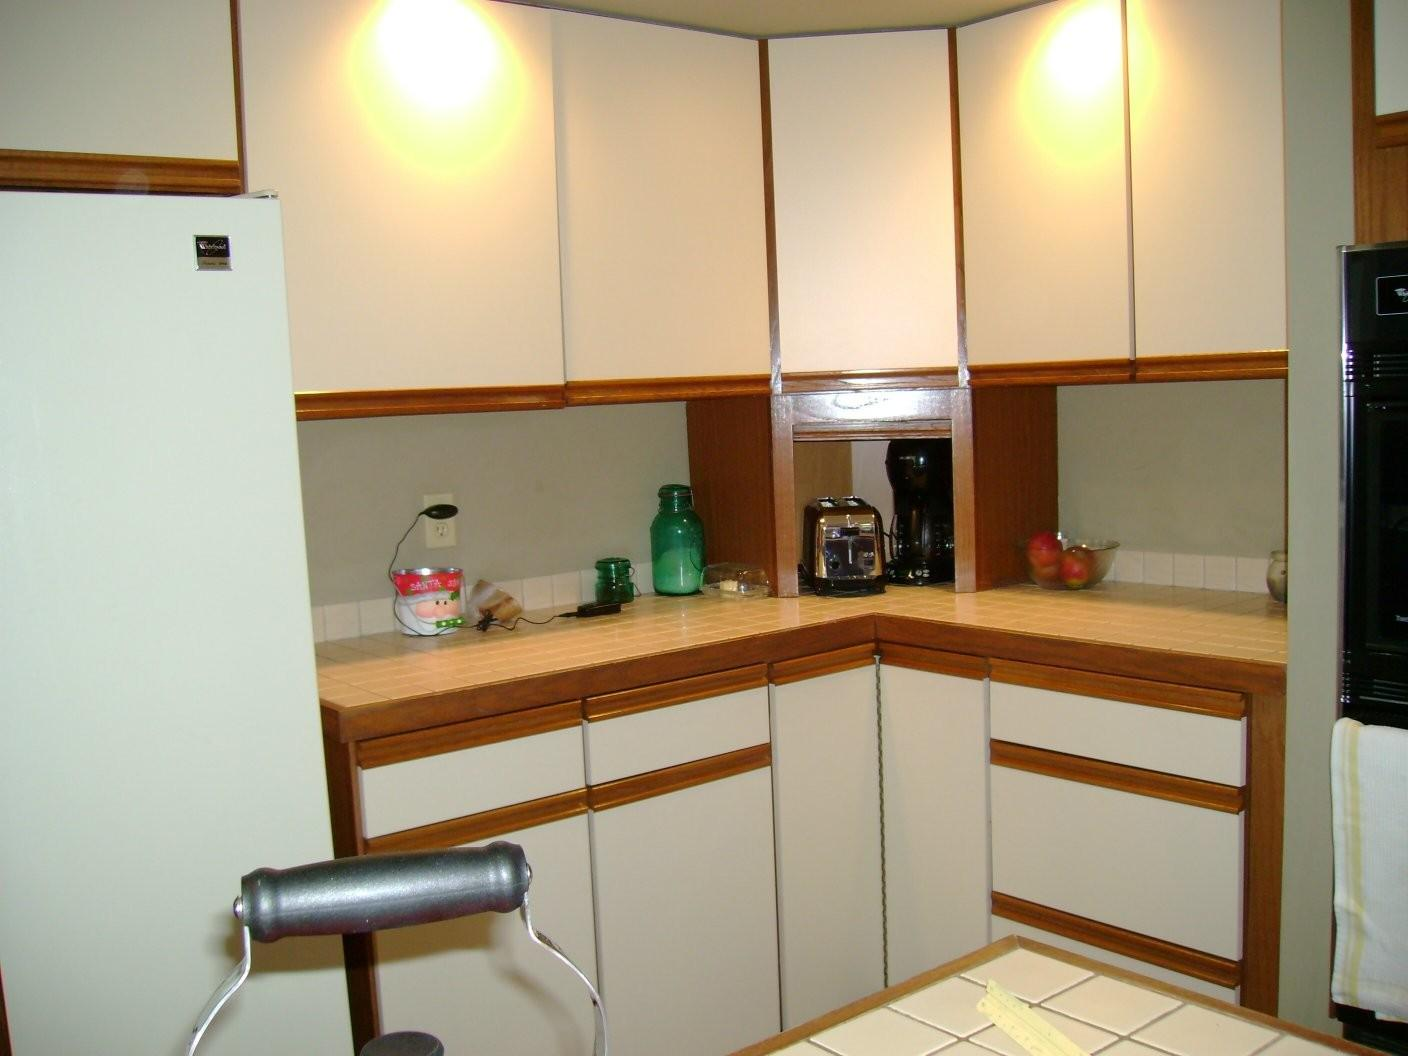 Annie Sloan Chalk Paint Kitchen Cabinets Before After